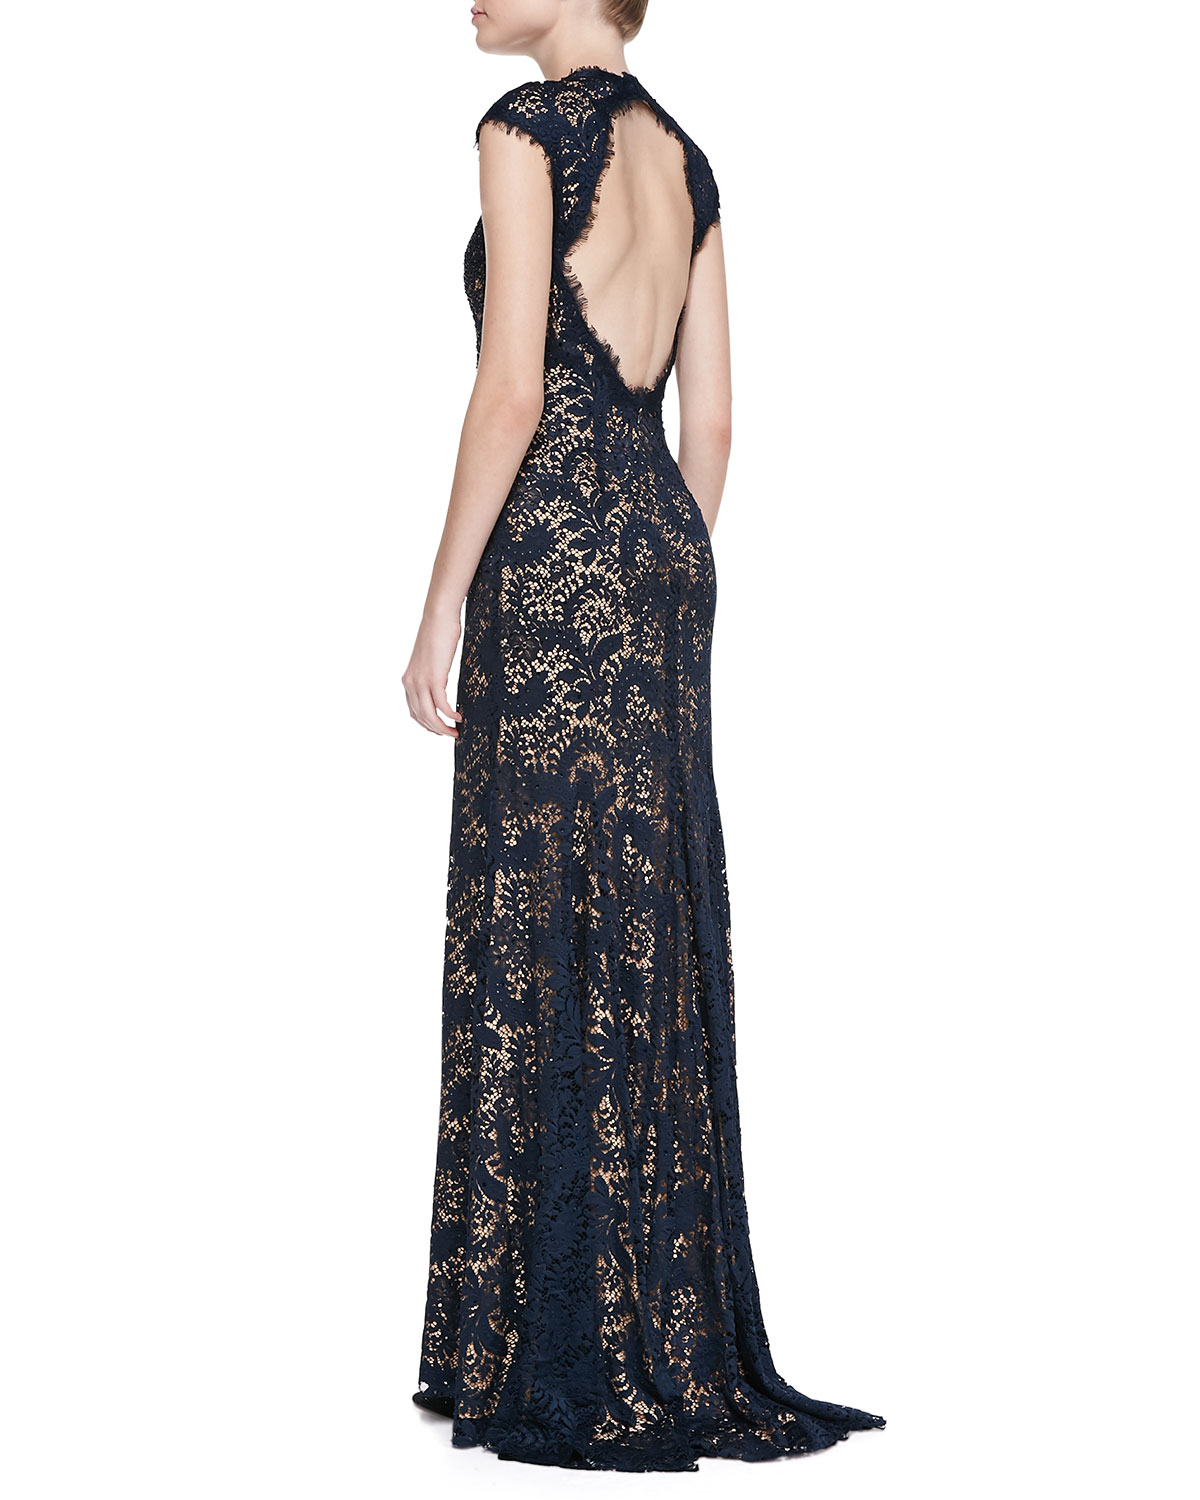 Lyst - Jovani Beaded Lace Gown in Black